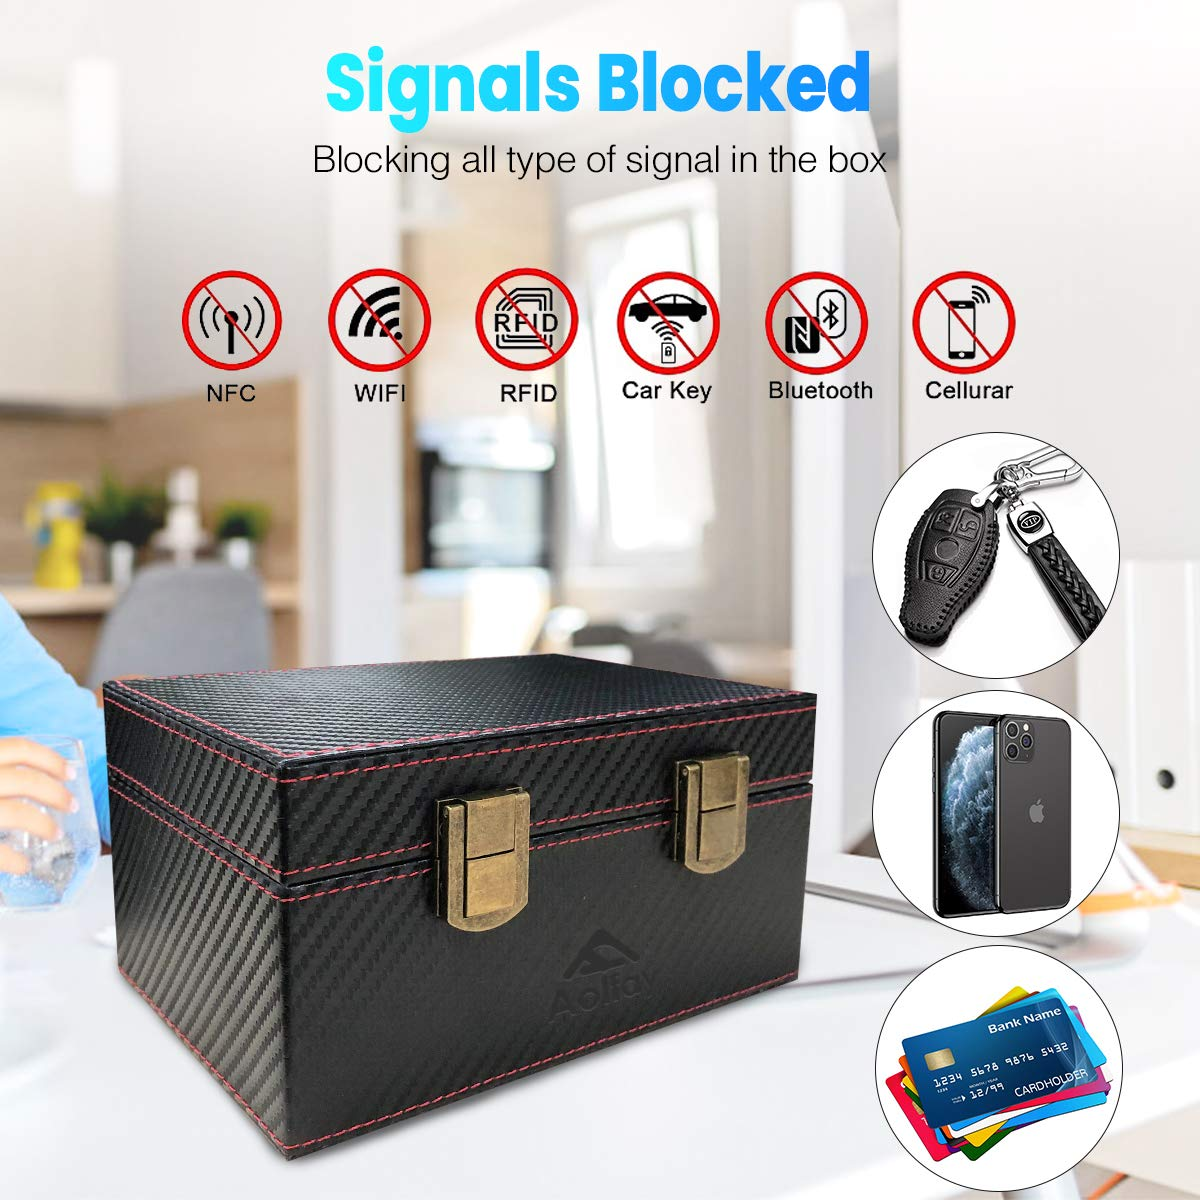 Aolfay Faraday Box, Signal Blocker Box for Car Keys, Keyless Cars Security Anti Theft Large Storage Box with 5 RFID Signal Blocking Cases, Shielding Pouch for Cell Phone and Car Key Privacy Protection